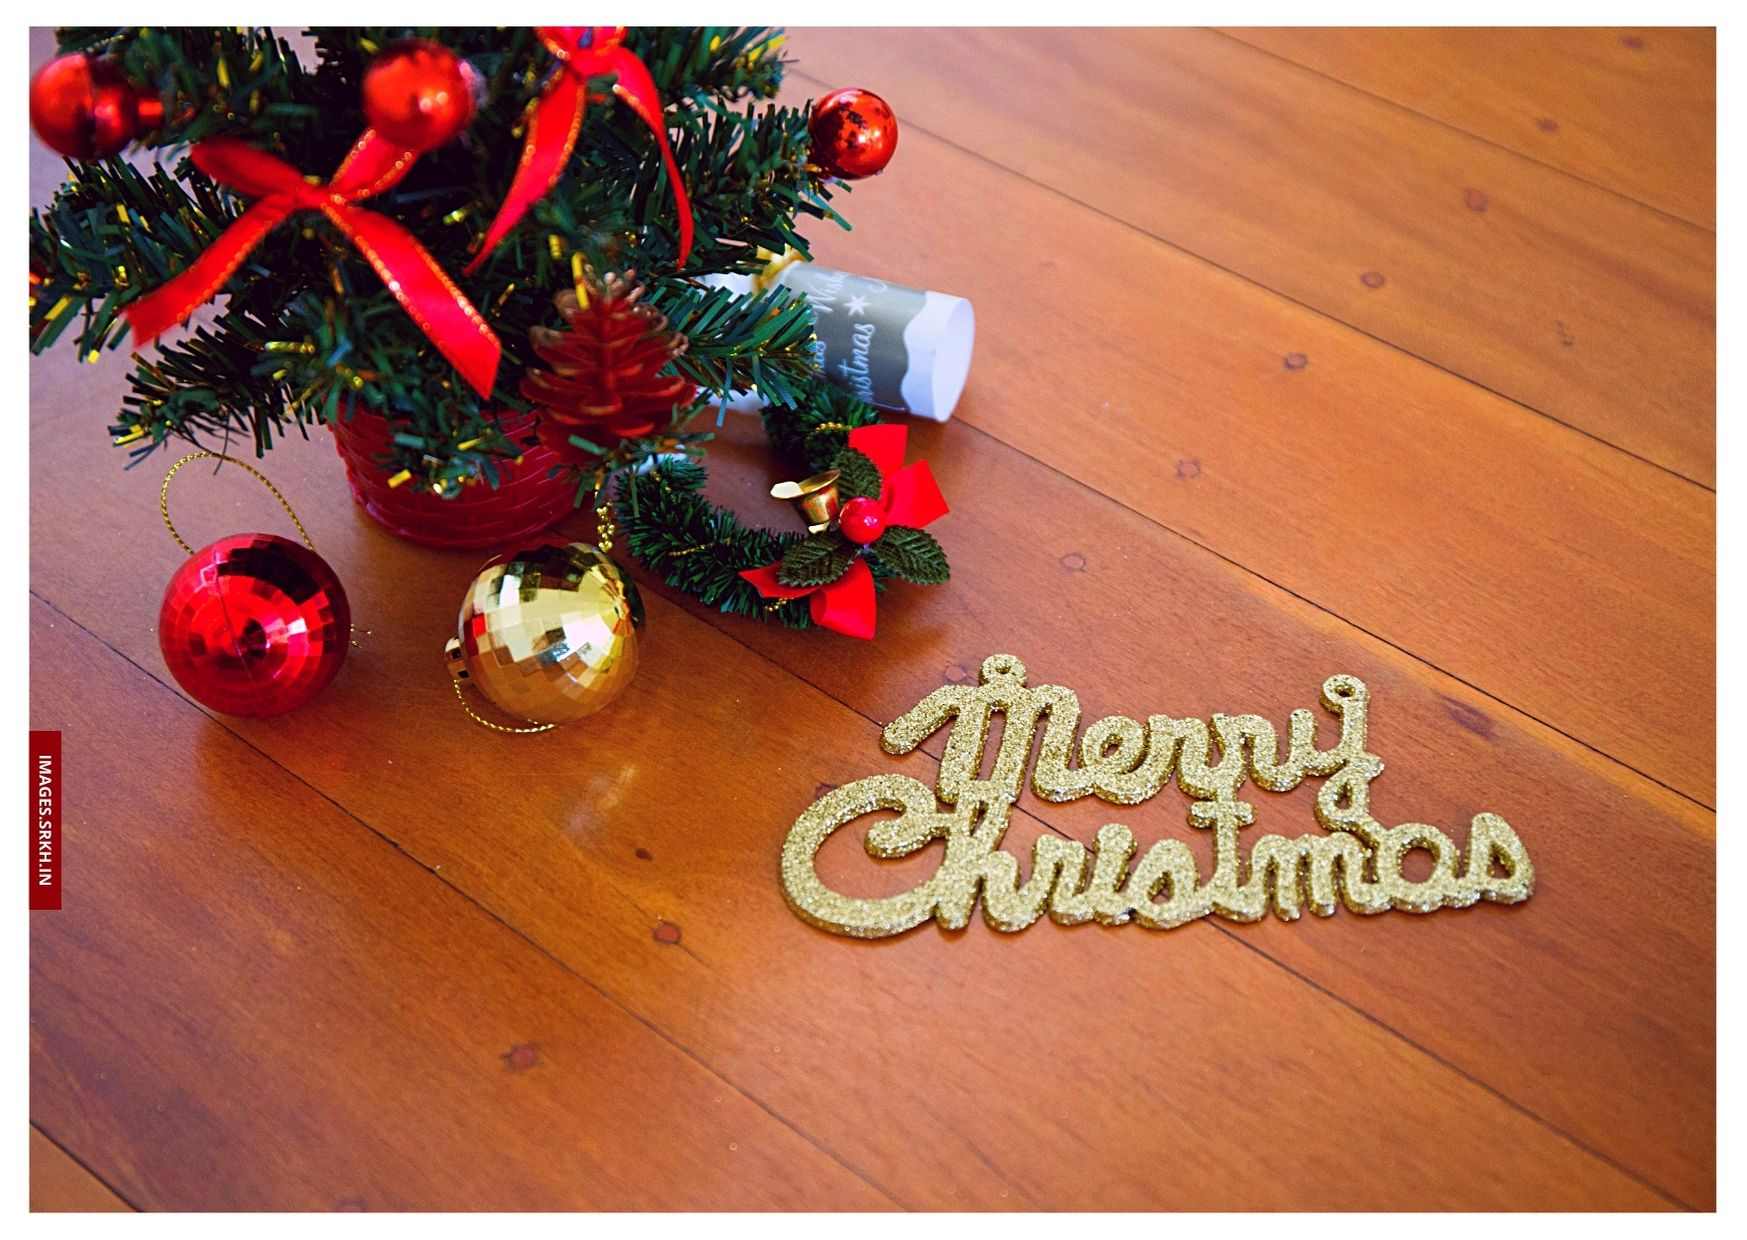 Xmas Images Free full HD free download.